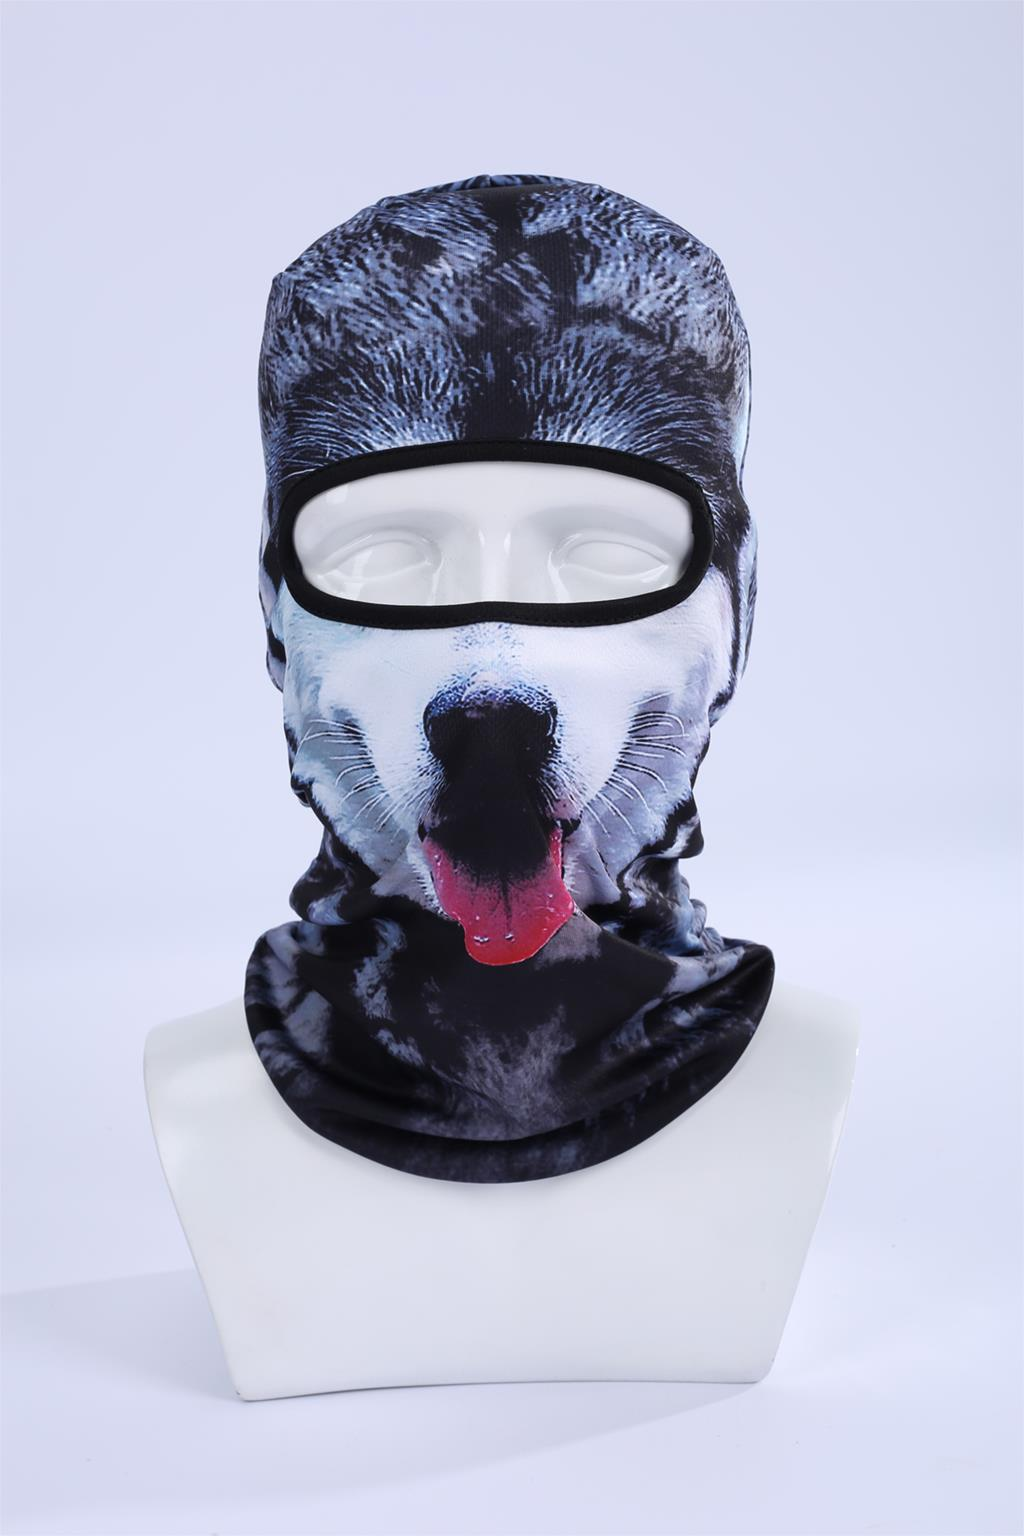 Hot Sale 2017 Cool ! 3d Dog Animal Ski Hood Hat Balaclava Full Face Mask Outdoor Sports Bicycle Cycling Ski Masks Bbb06 women beanie new hot sale 3d zebra animal hood hat balaclava full face mask outdoor sports bicycle cycling ski motorcycle masks